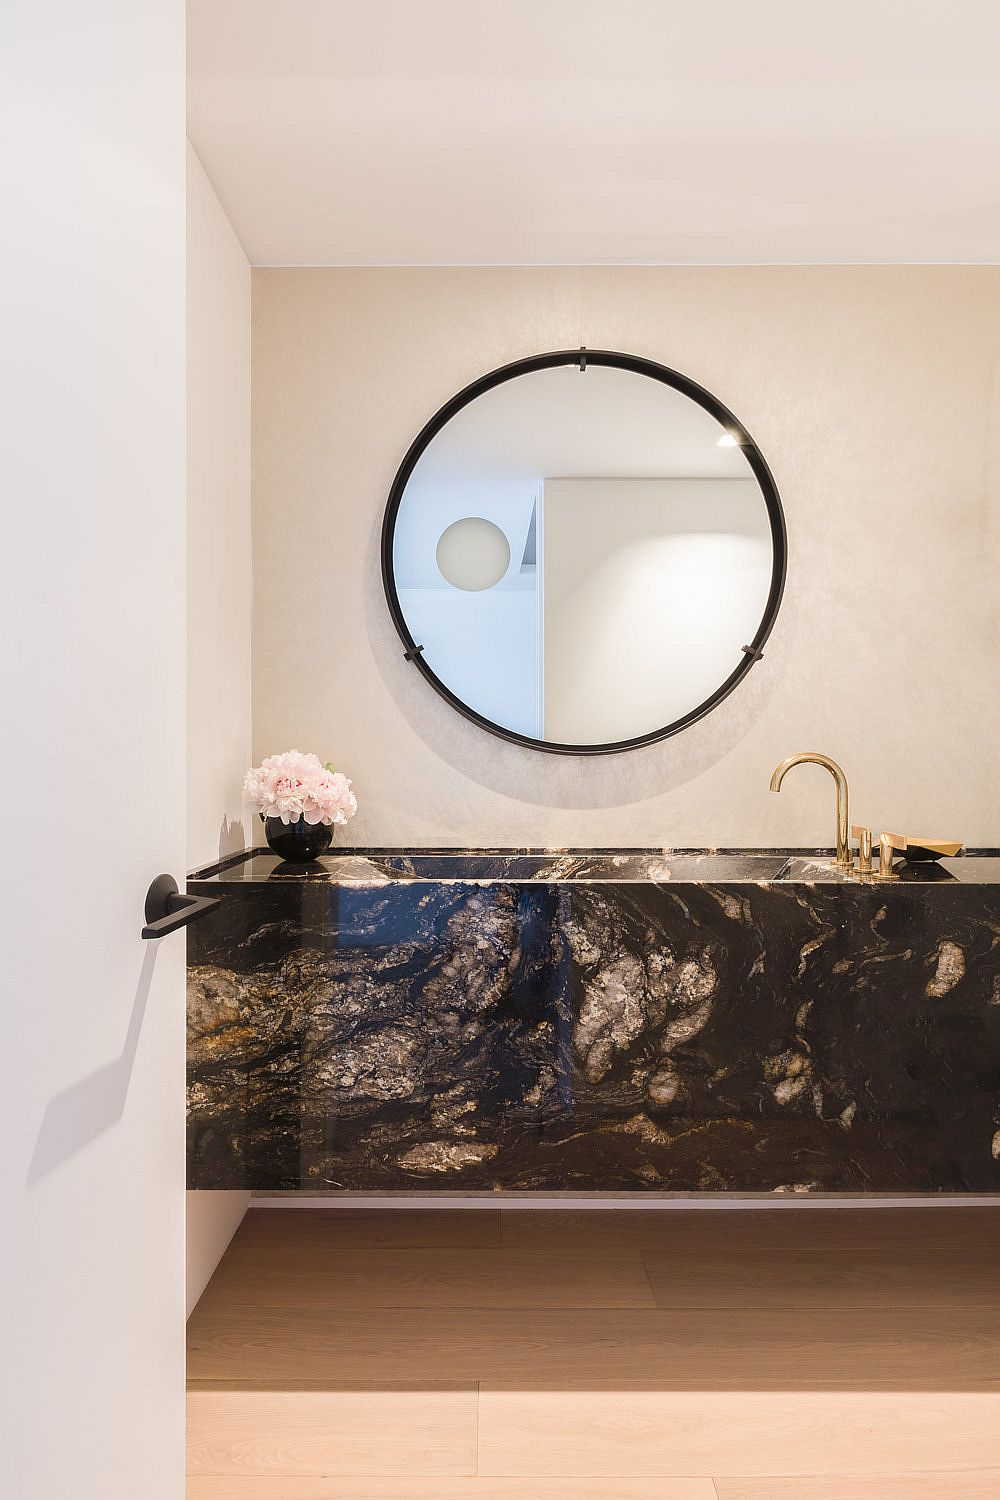 Floating stone vanity in the modern bathroom instantly grabs your attention